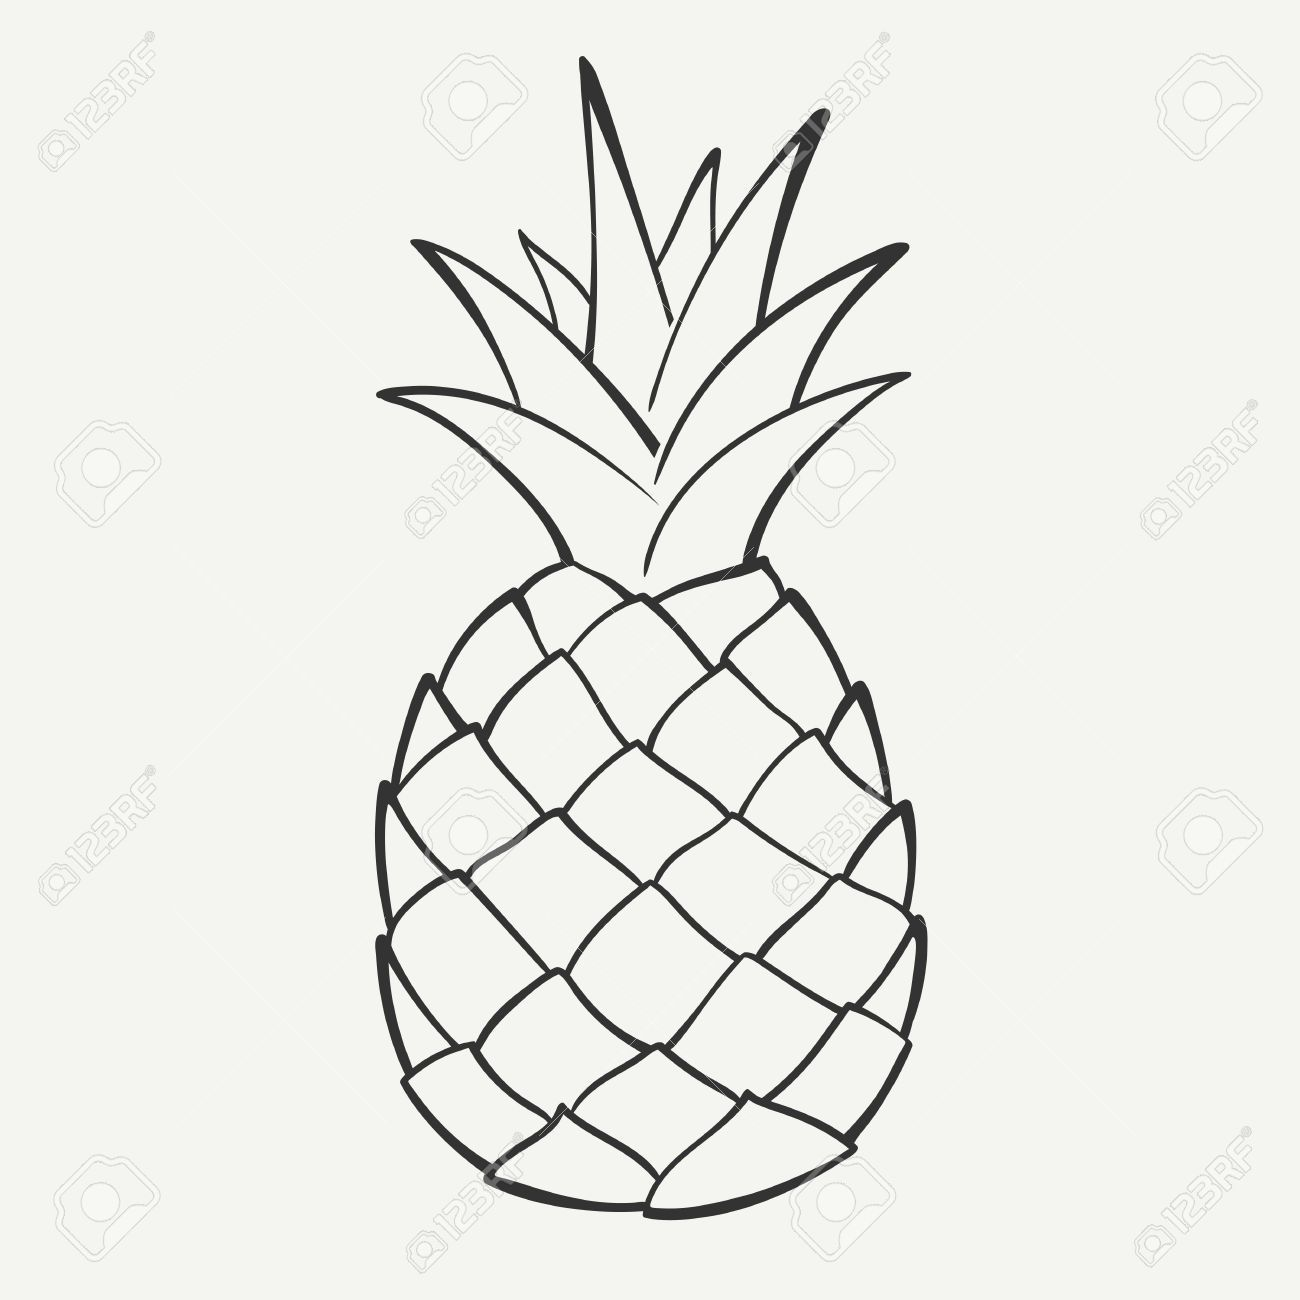 Pineapple clipart drawn. Outline black and white